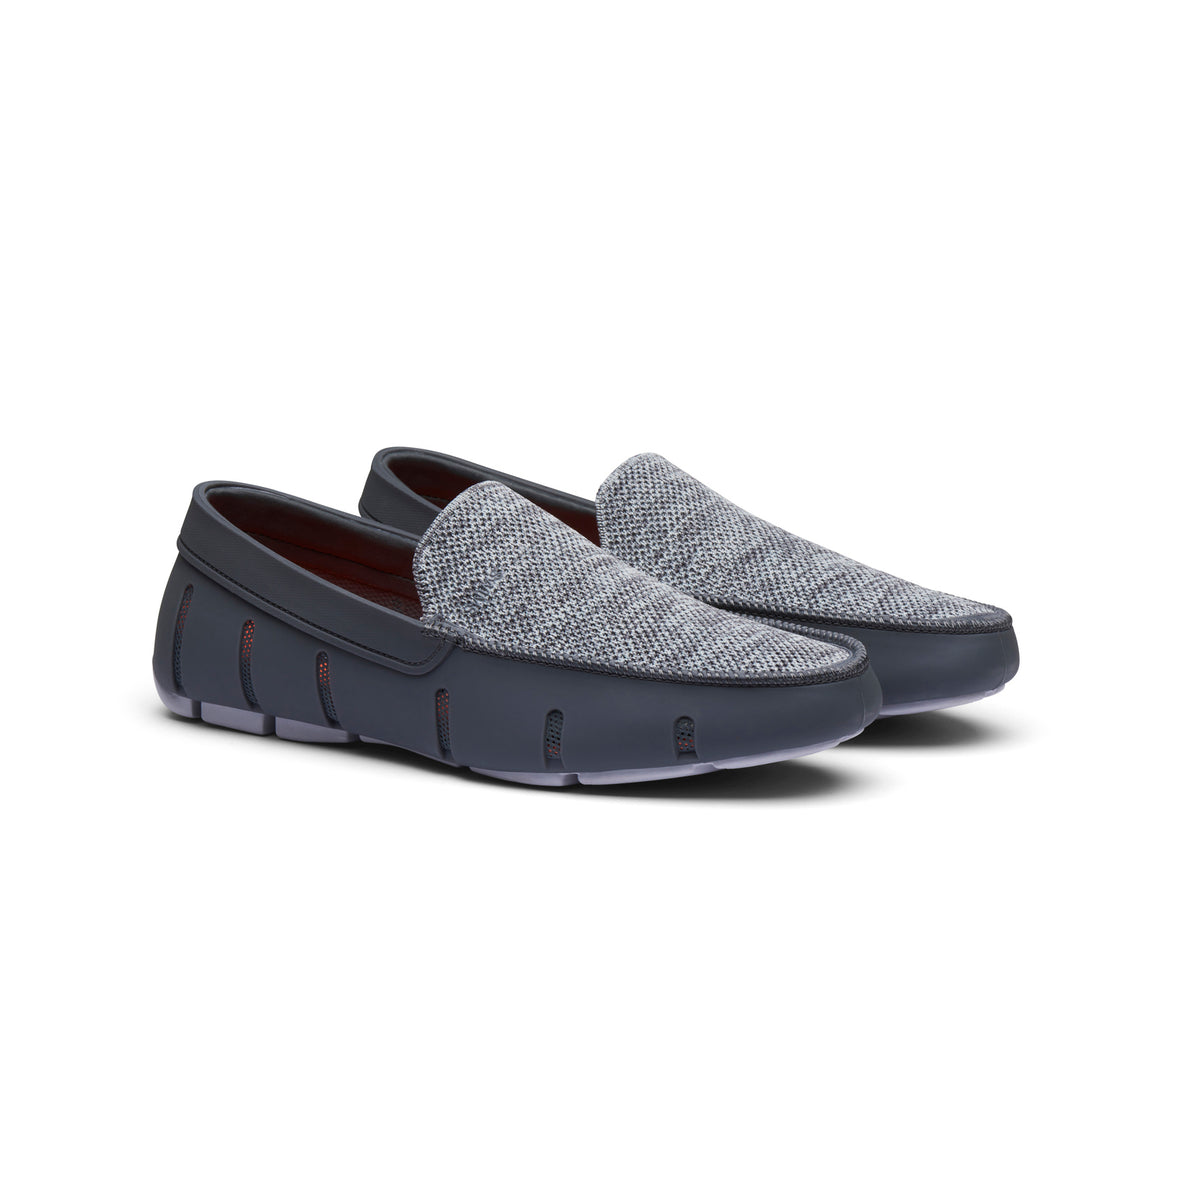 Classic Venetian Loafer - background::white,variant::Gray/Glacier Gray